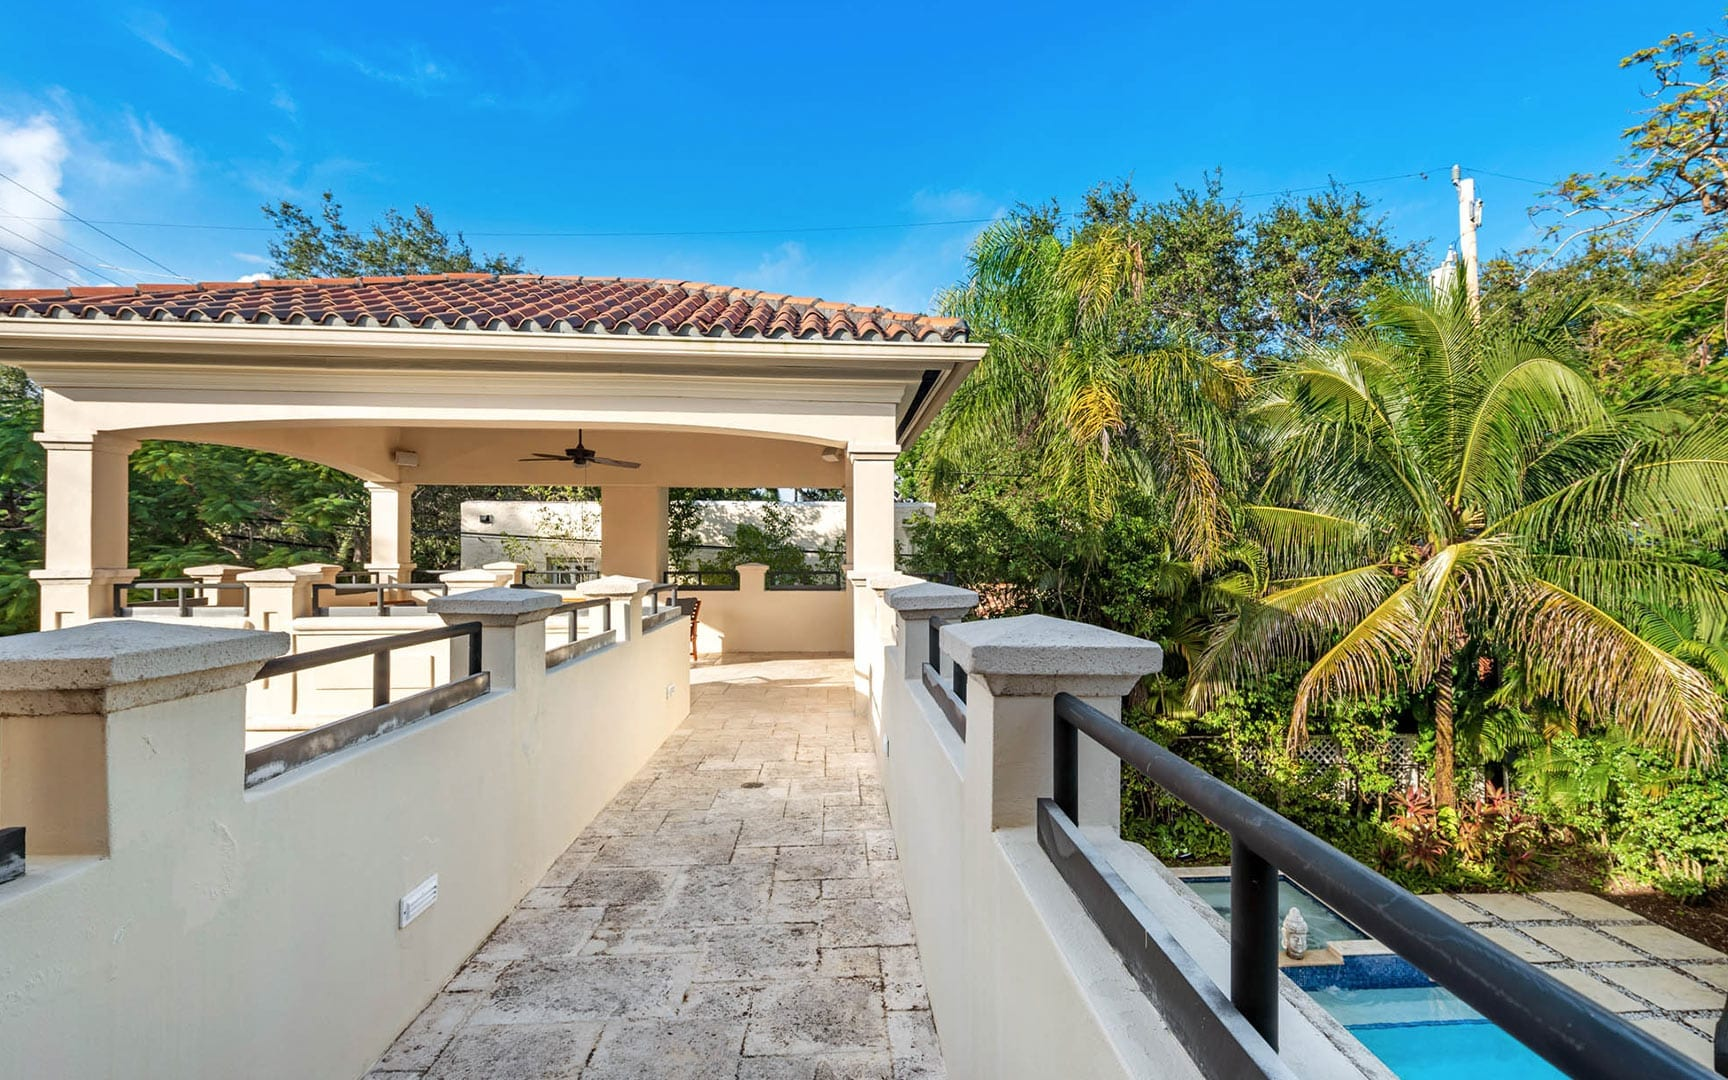 Spanish style luxury vacation home rental with pool in Miami - Villa Fortrezza - Nomade Villa Collection